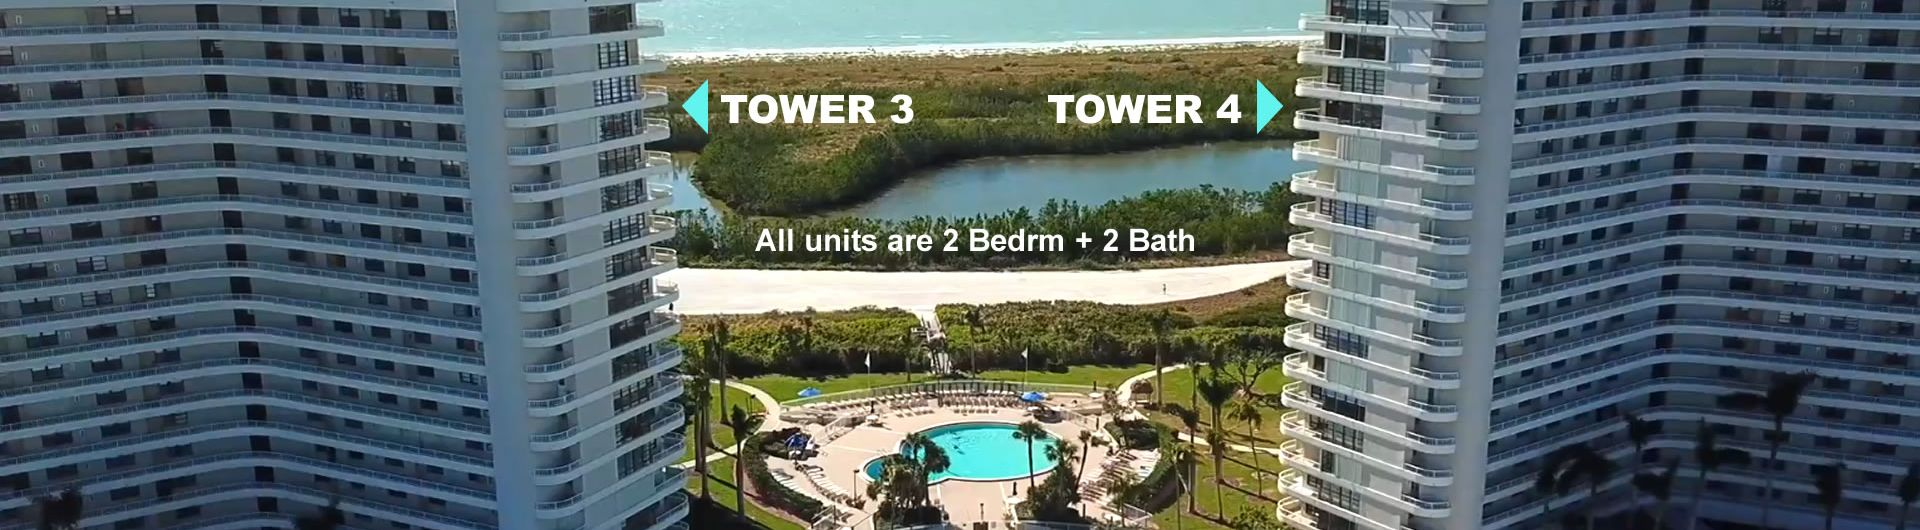 Towers 3 & 4